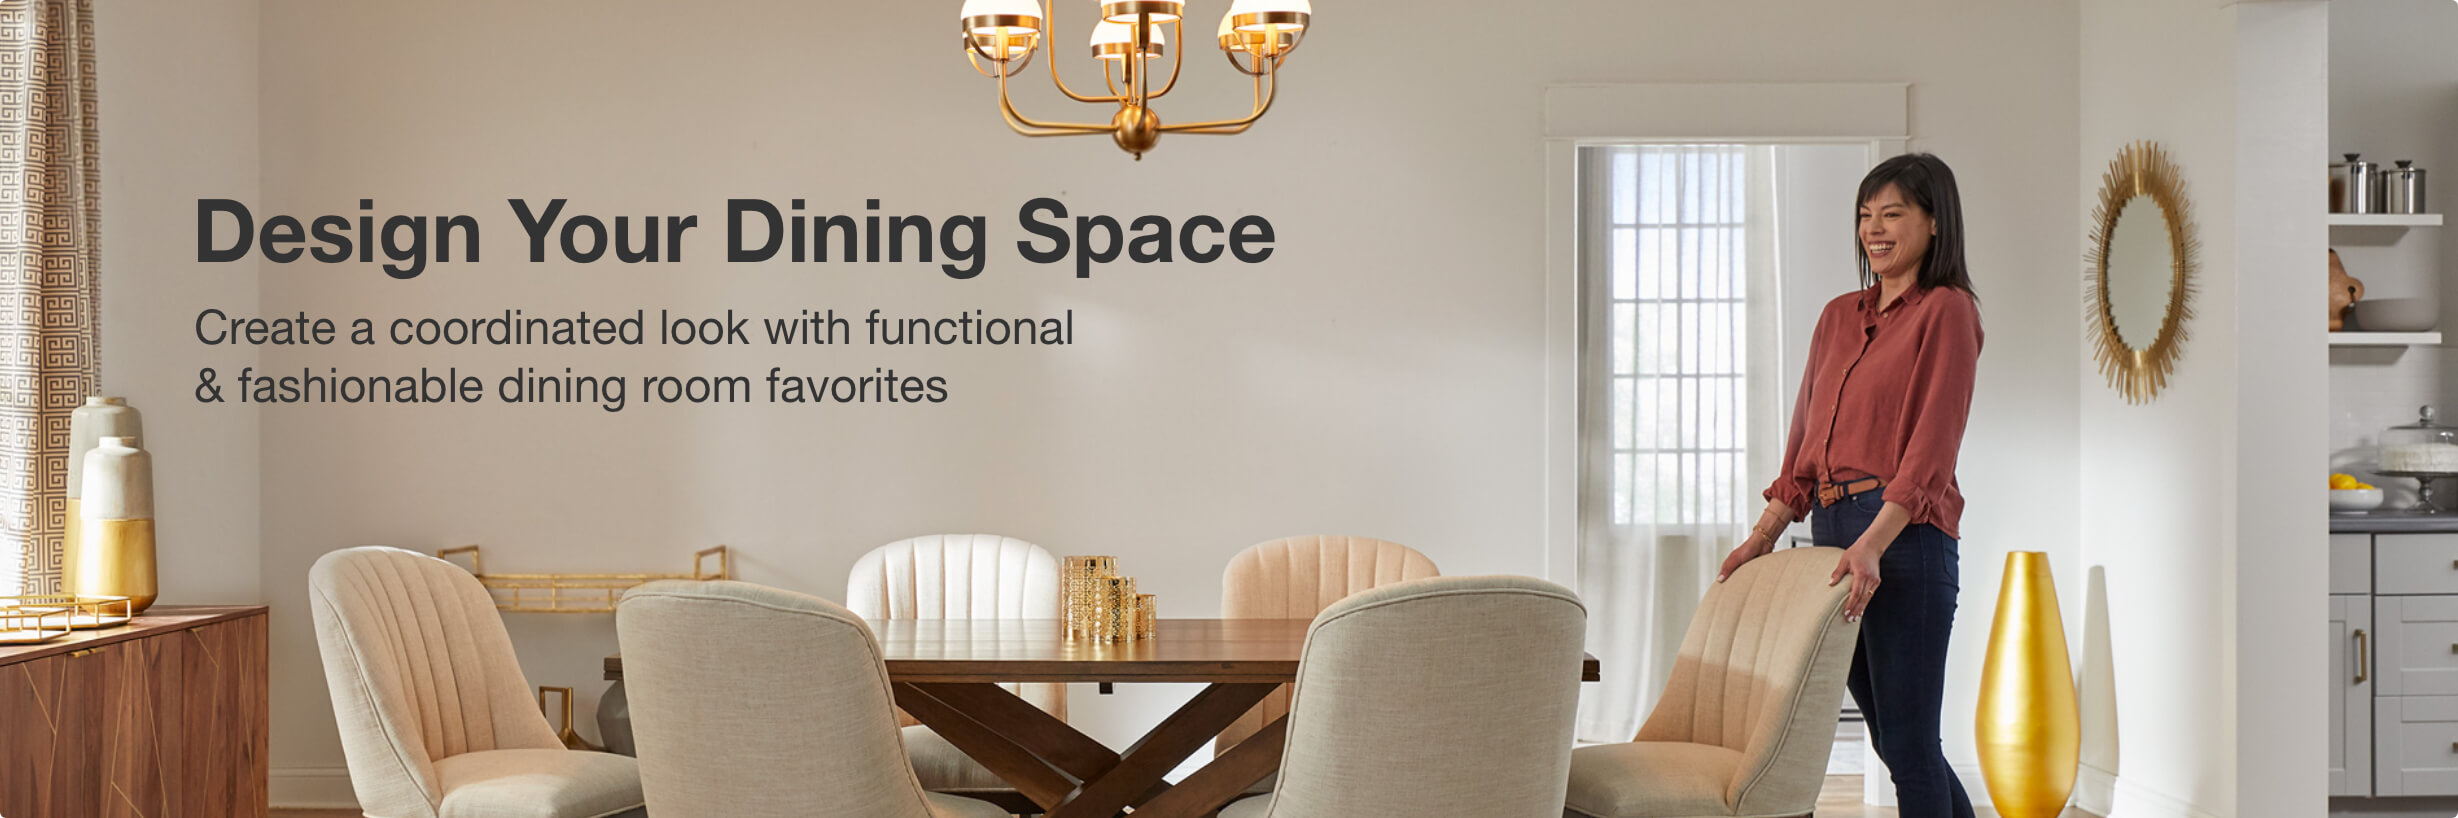 Design Your Dining Space